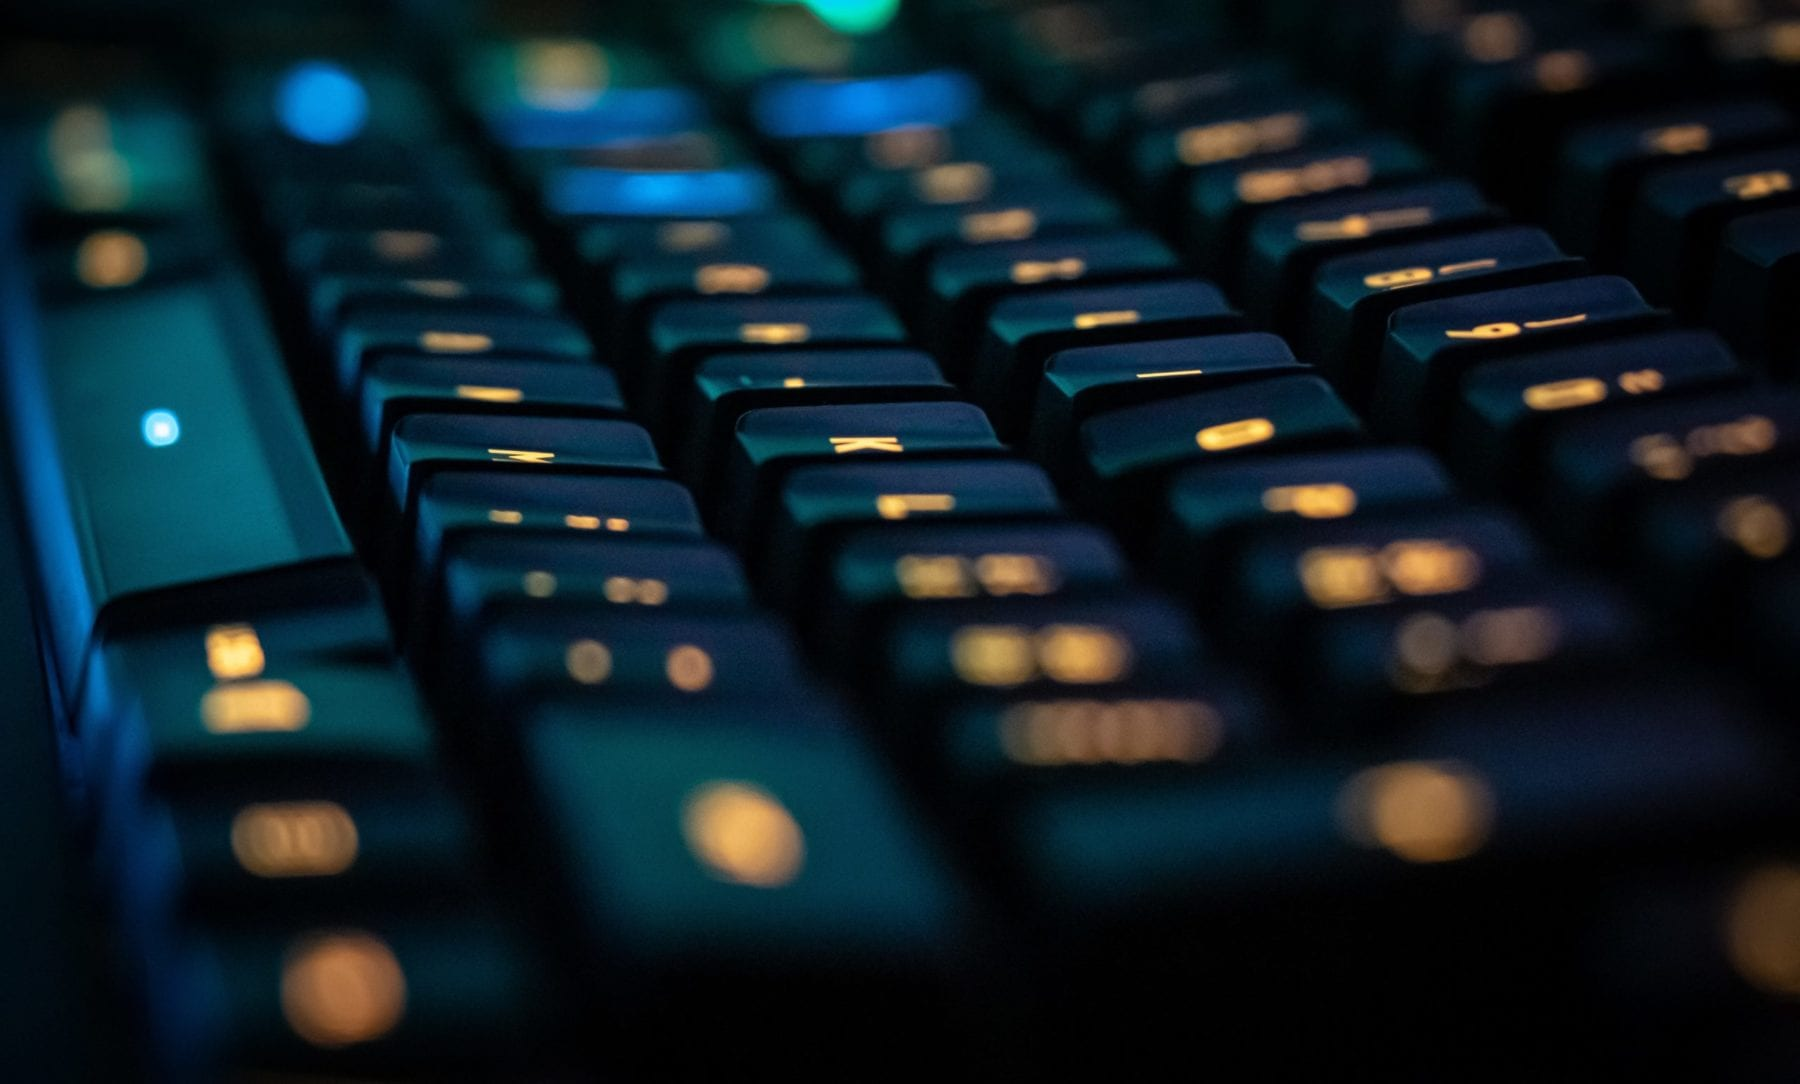 Nitro Type offers real-time worldwide typing competition